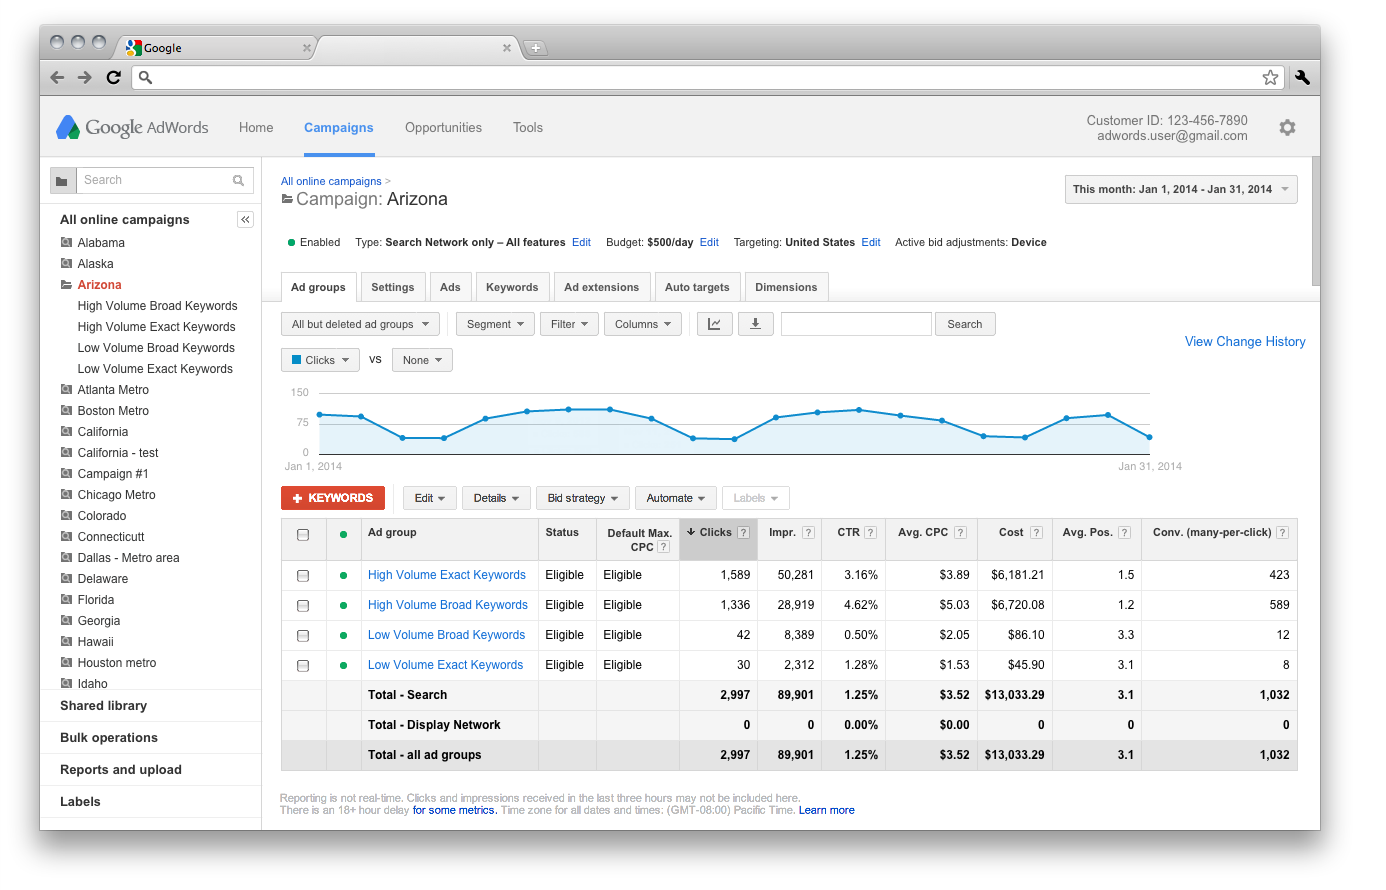 ui2 Google revamps AdWords with more screen real estate for tools and reports, same design as its other Web apps